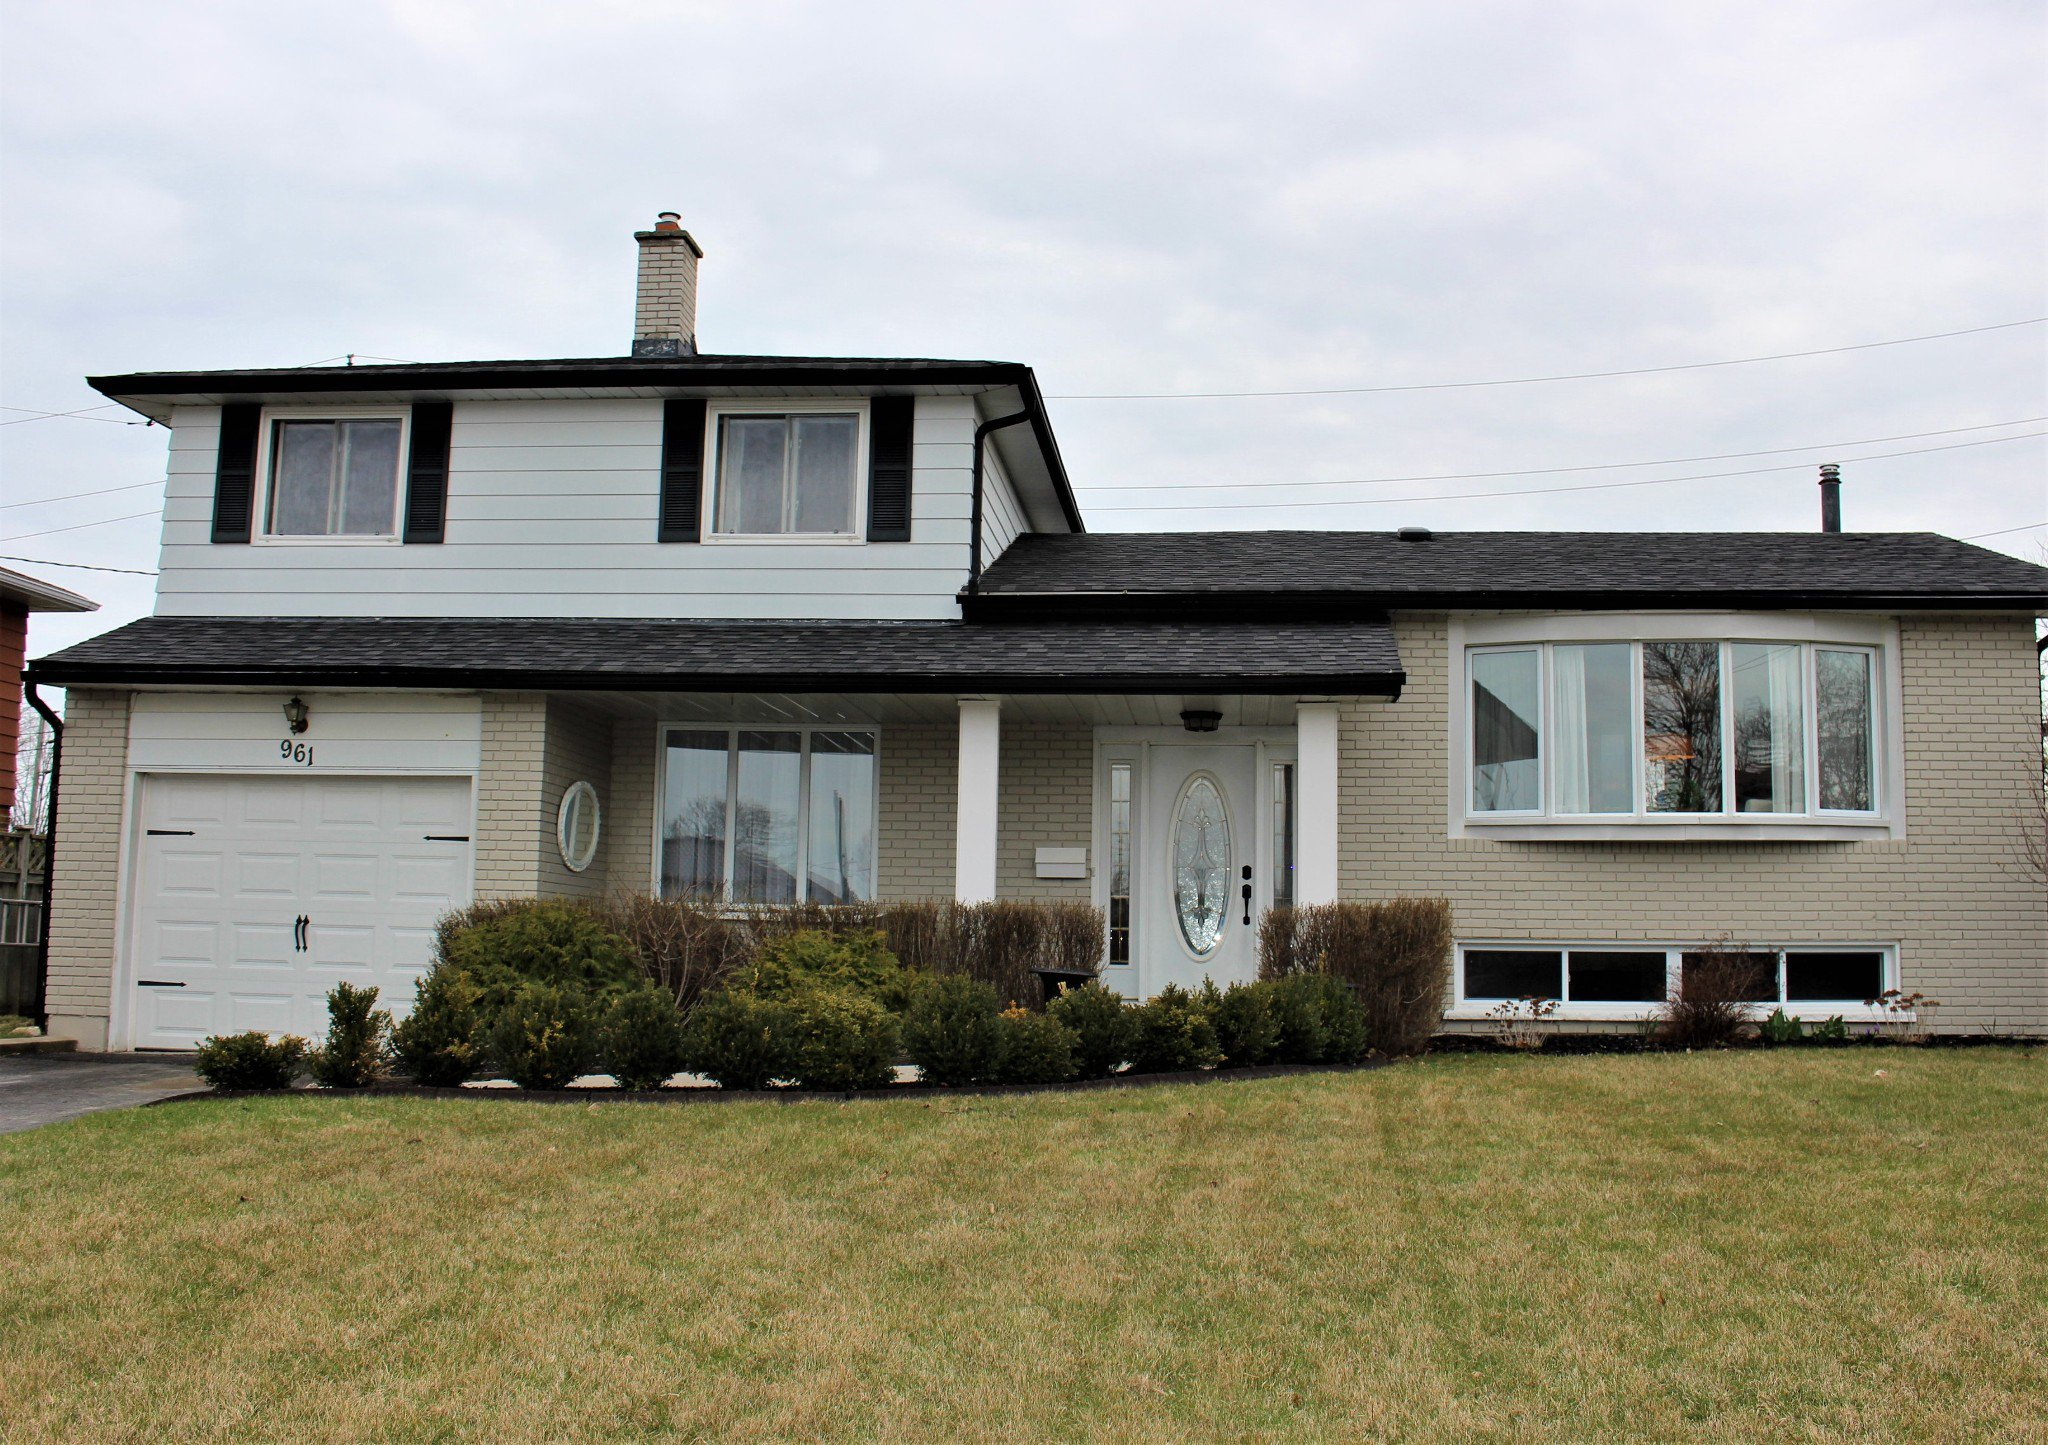 Main Photo: 961 Curtis Crescent in Cobourg: Residential Detached for sale : MLS®# 188908